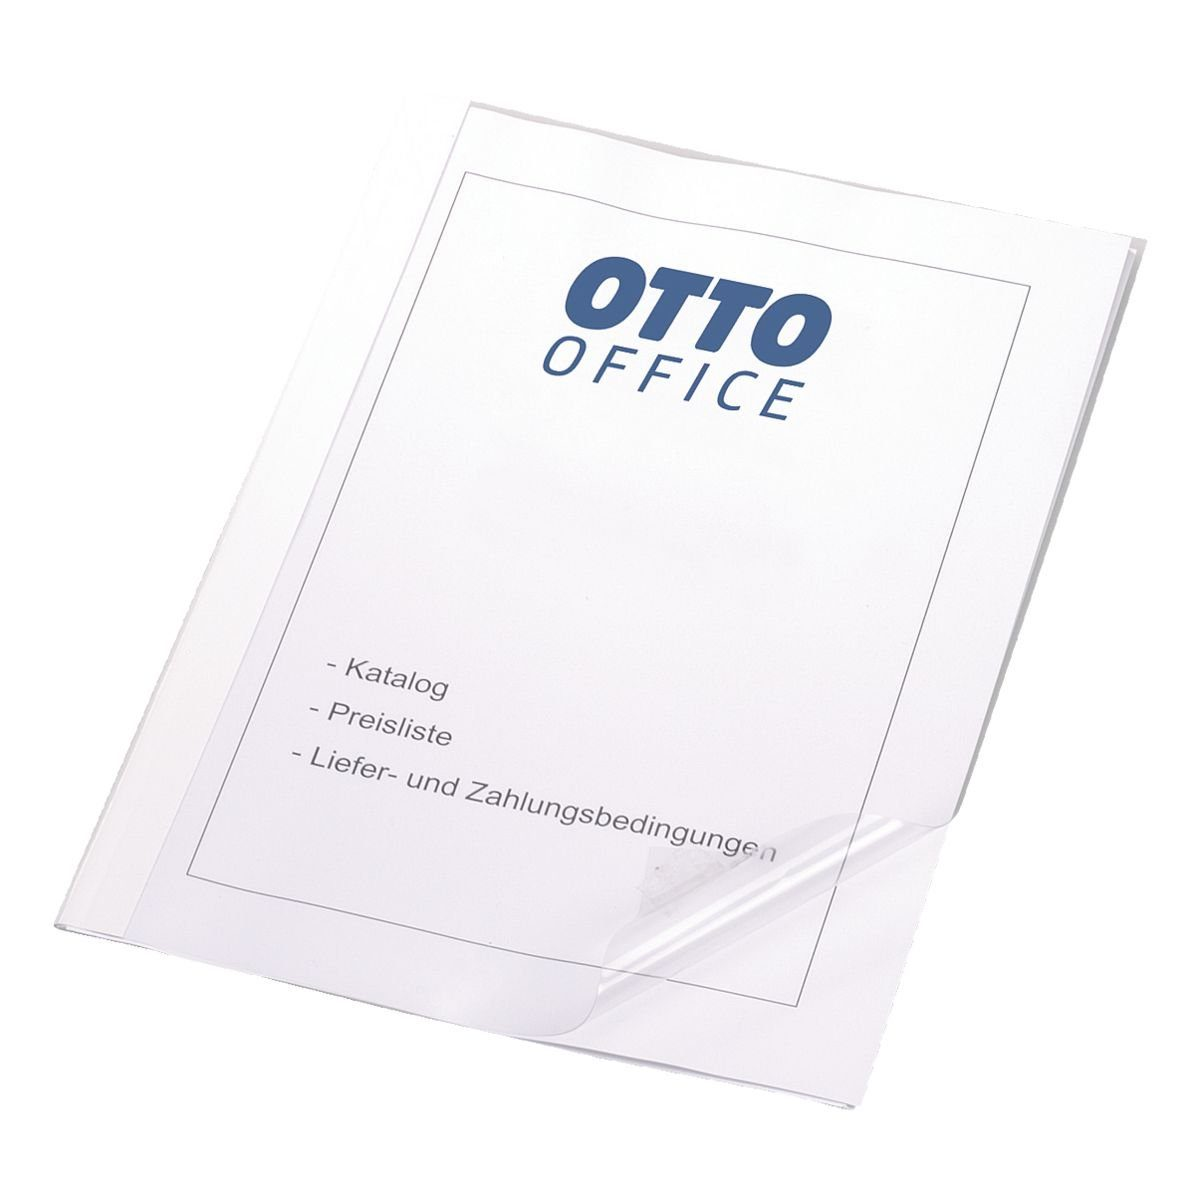 OTTO Office Thermobindemappen